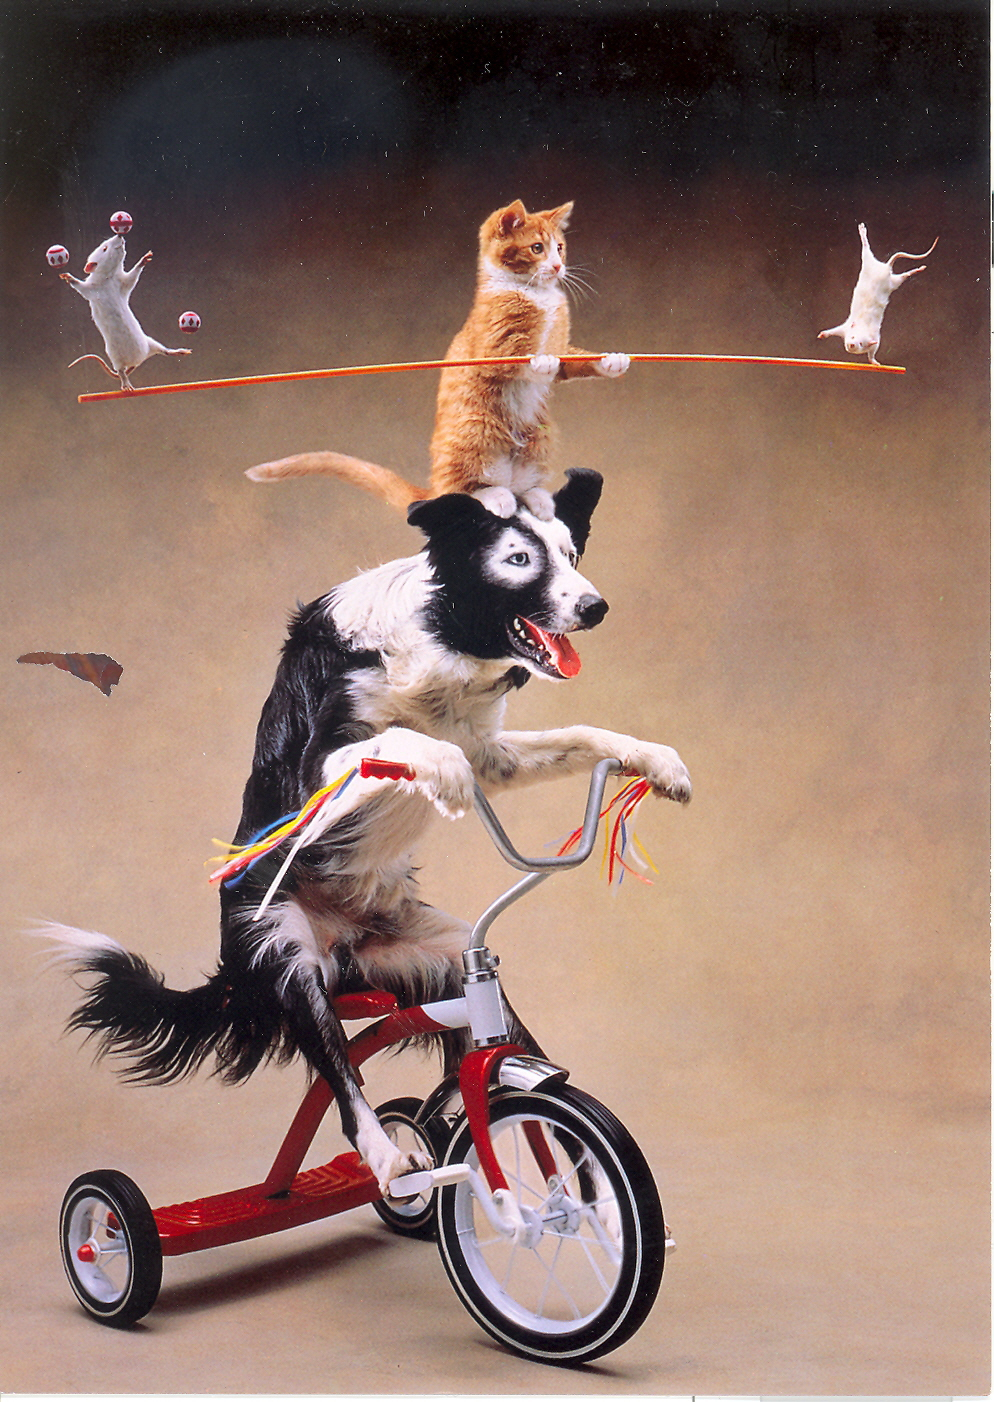 juggling animals